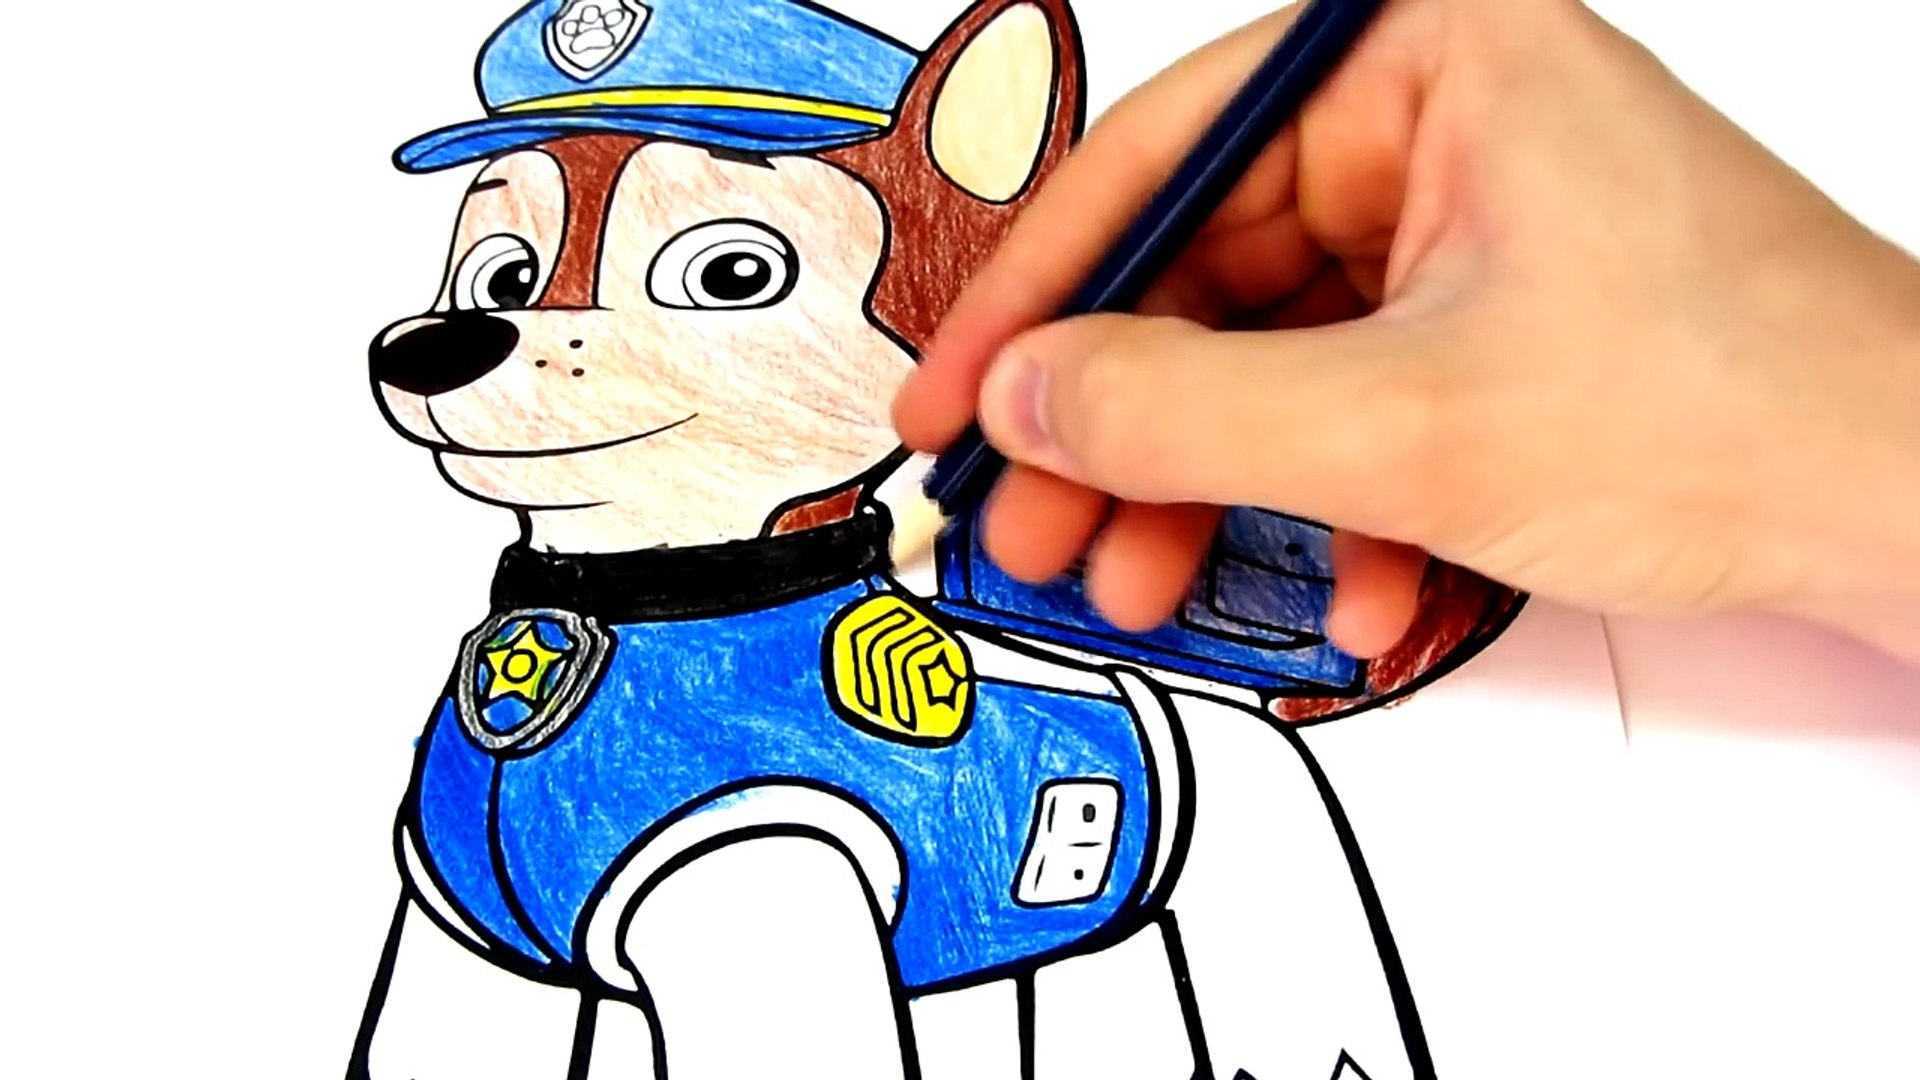 Paw Patrol Coloring Book Coloring Pages Kids Fun Art Activities Coloring Videos For Kids